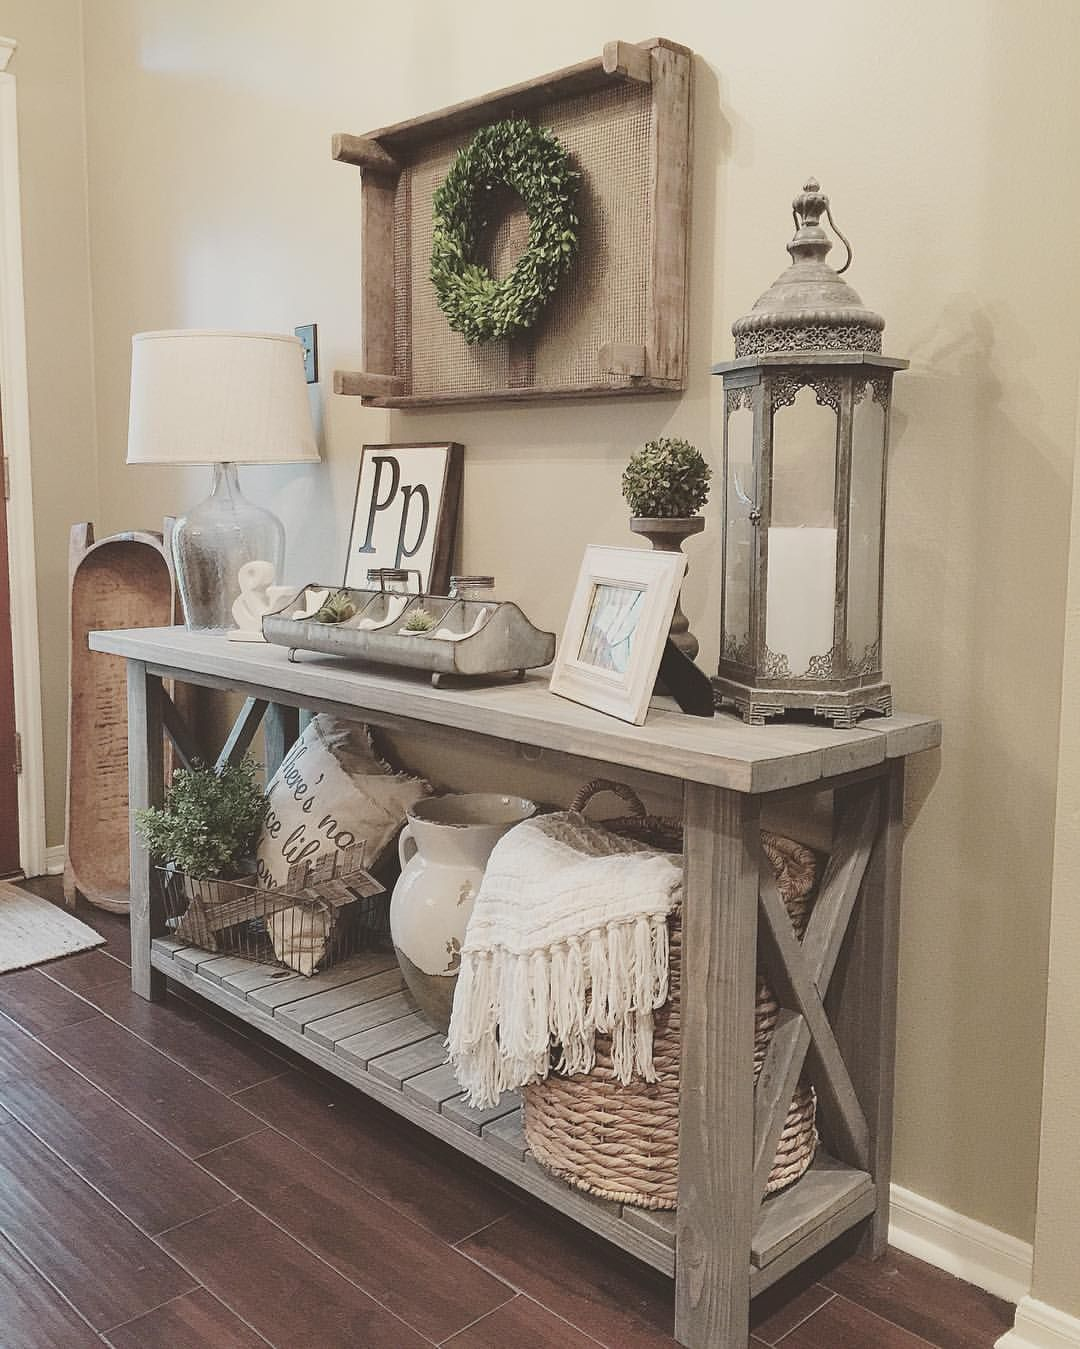 Rustic hallway furniture  See this Instagram photo by homedecormomma u  likes  For the